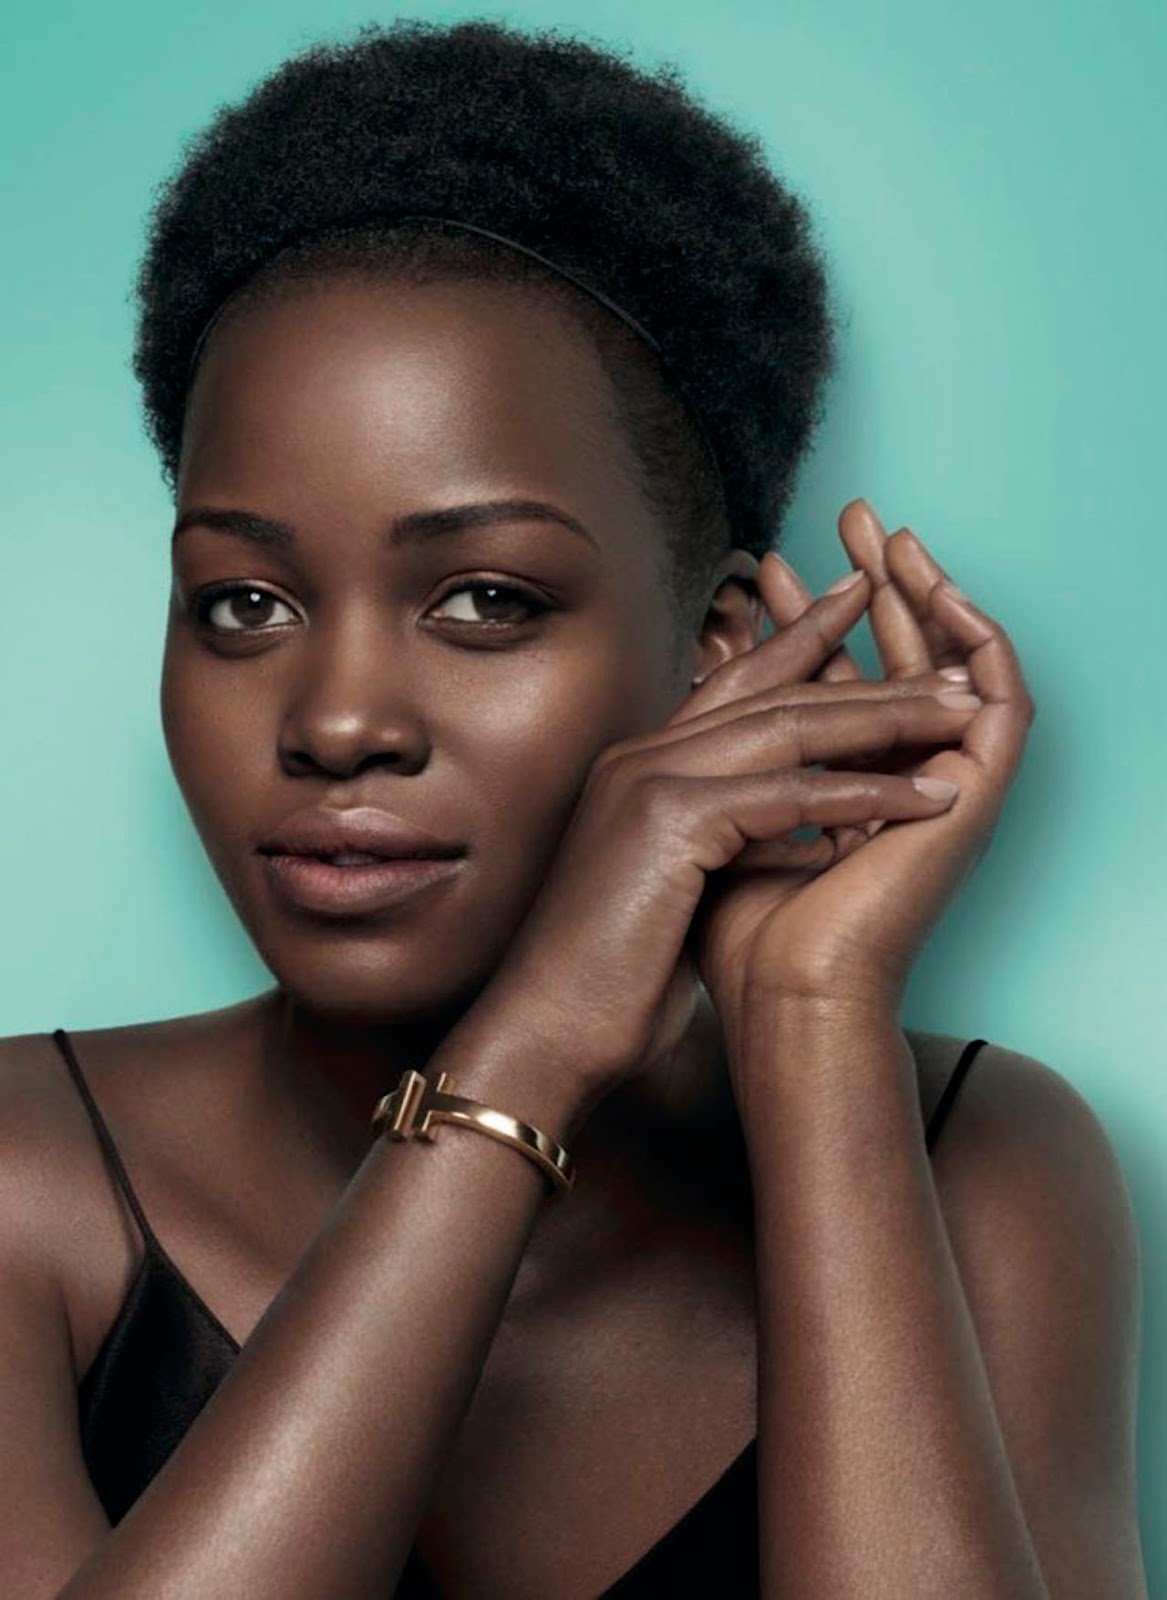 Lupita Nyong'o Is The New Face Of Tiffany & Co.